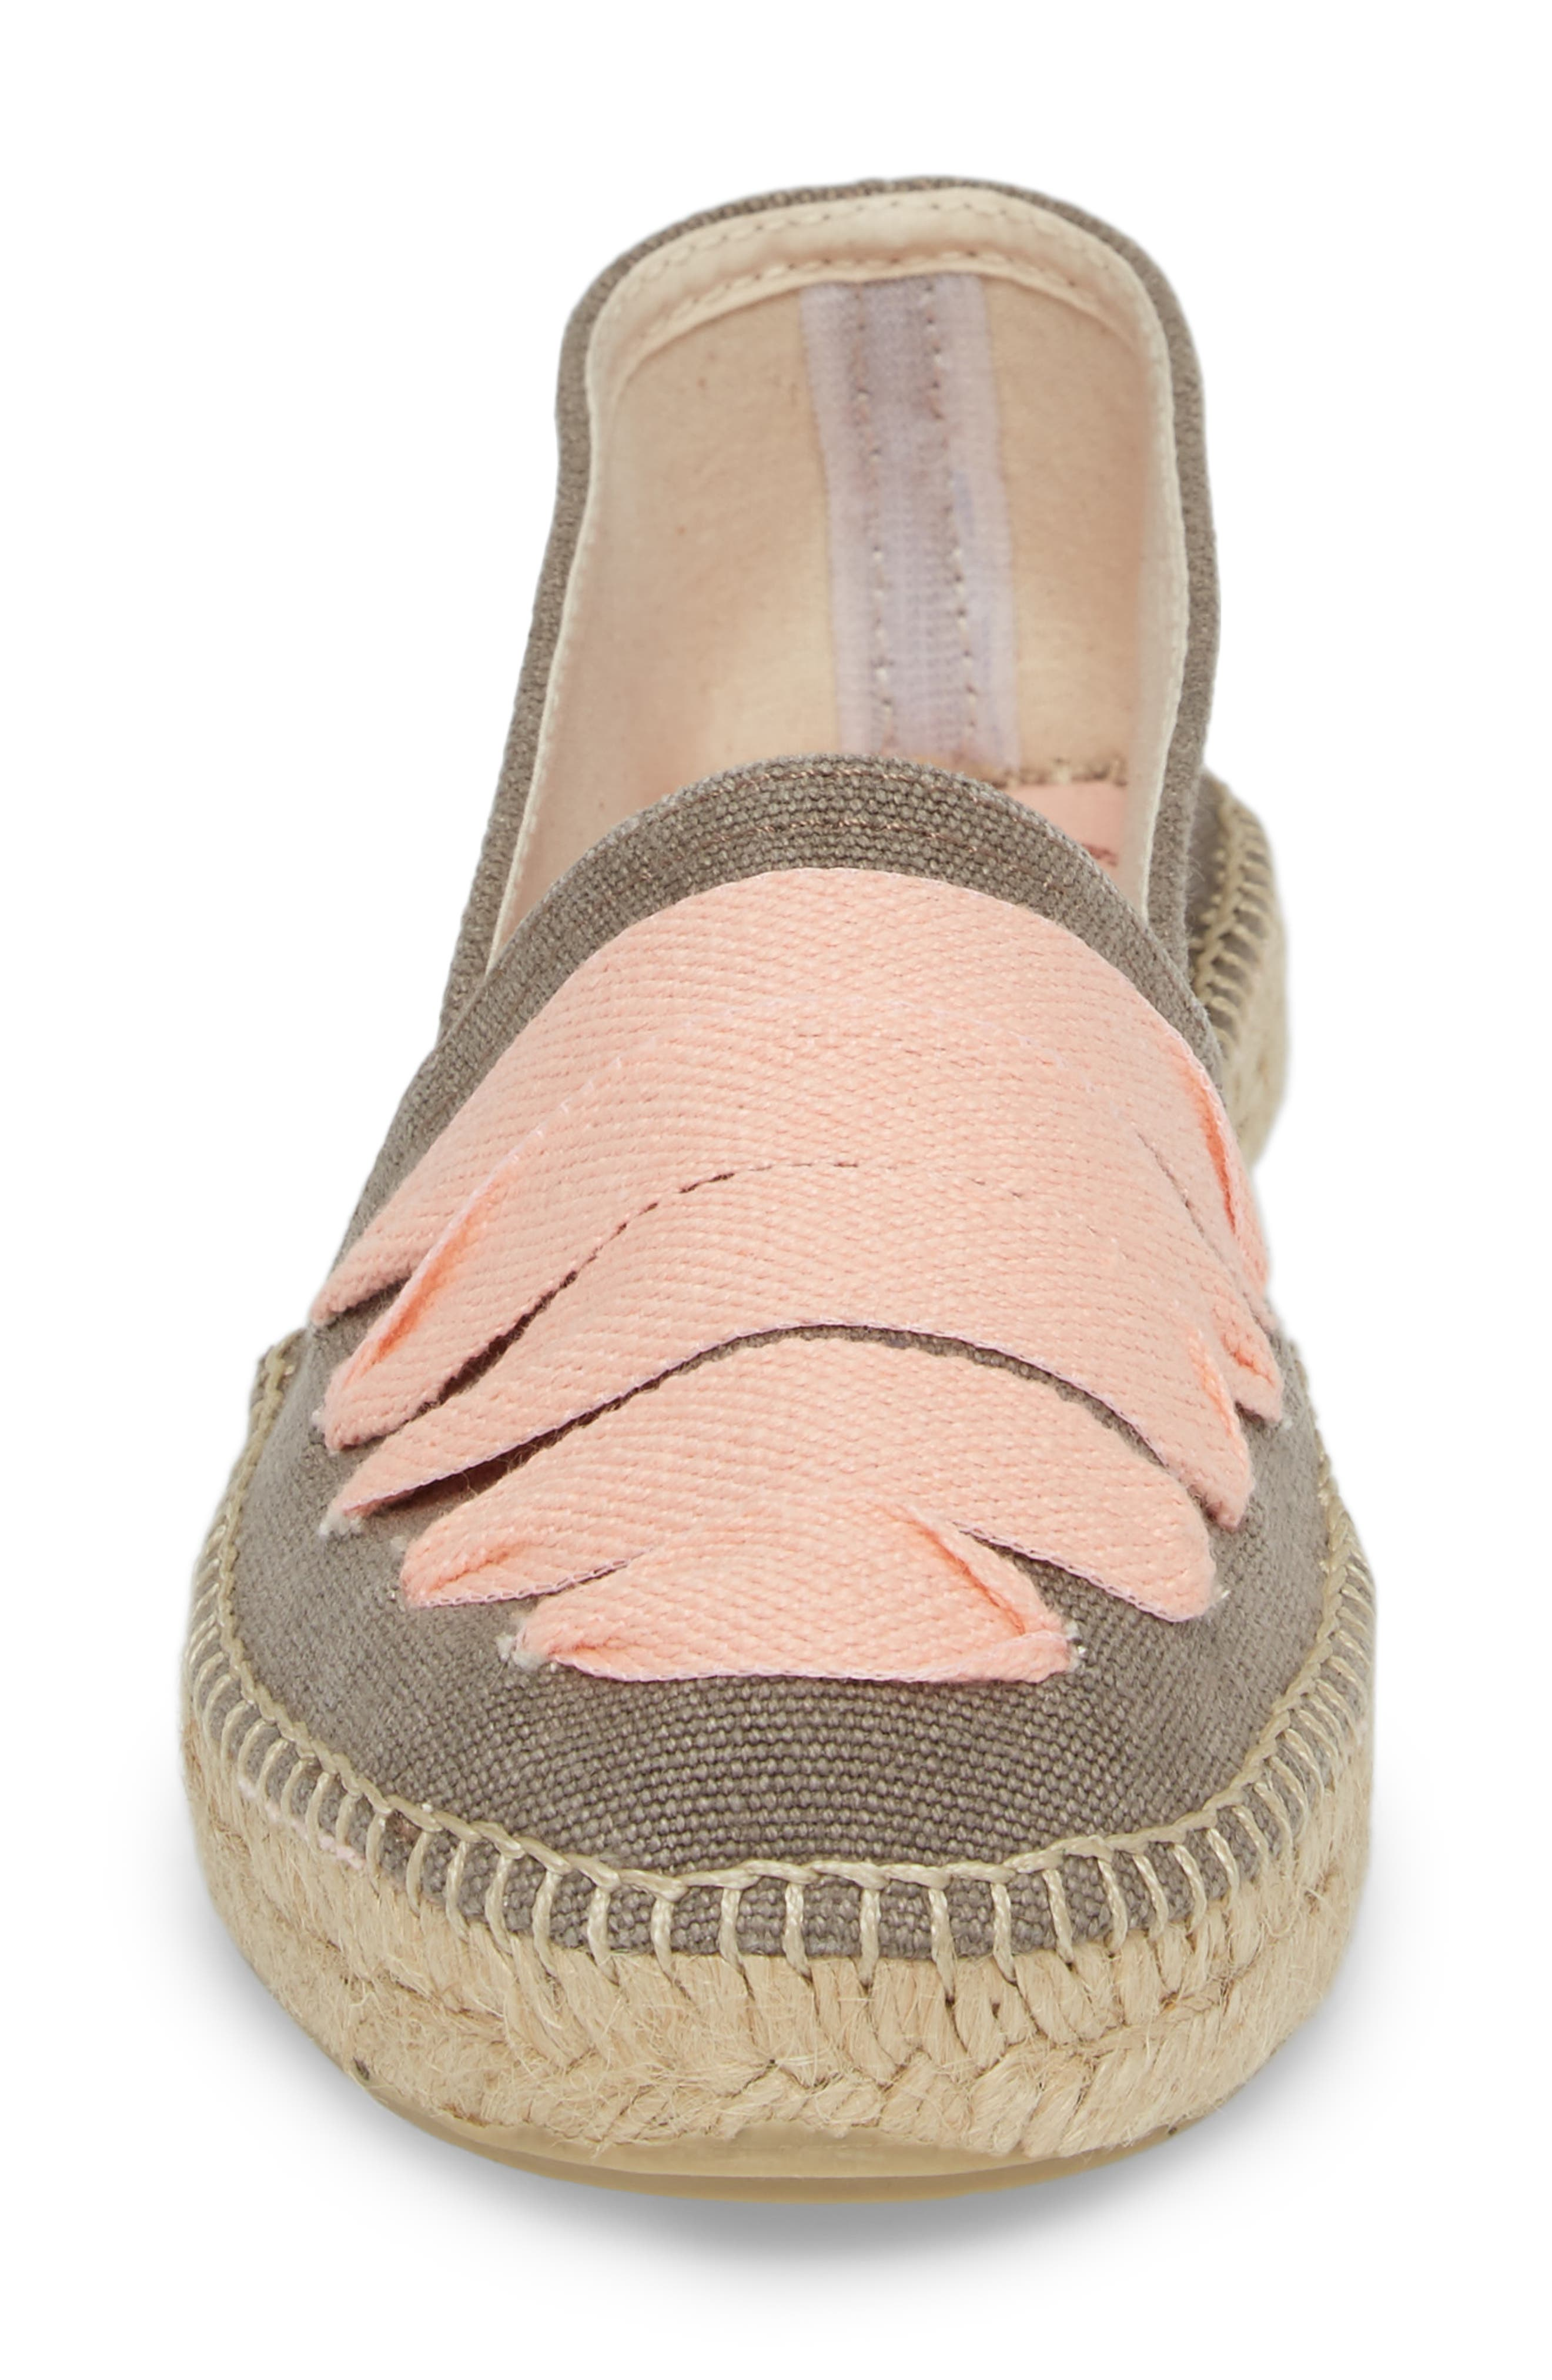 Rubi Espadrille Flat,                             Alternate thumbnail 4, color,                             Gris/ Rosa Fabric